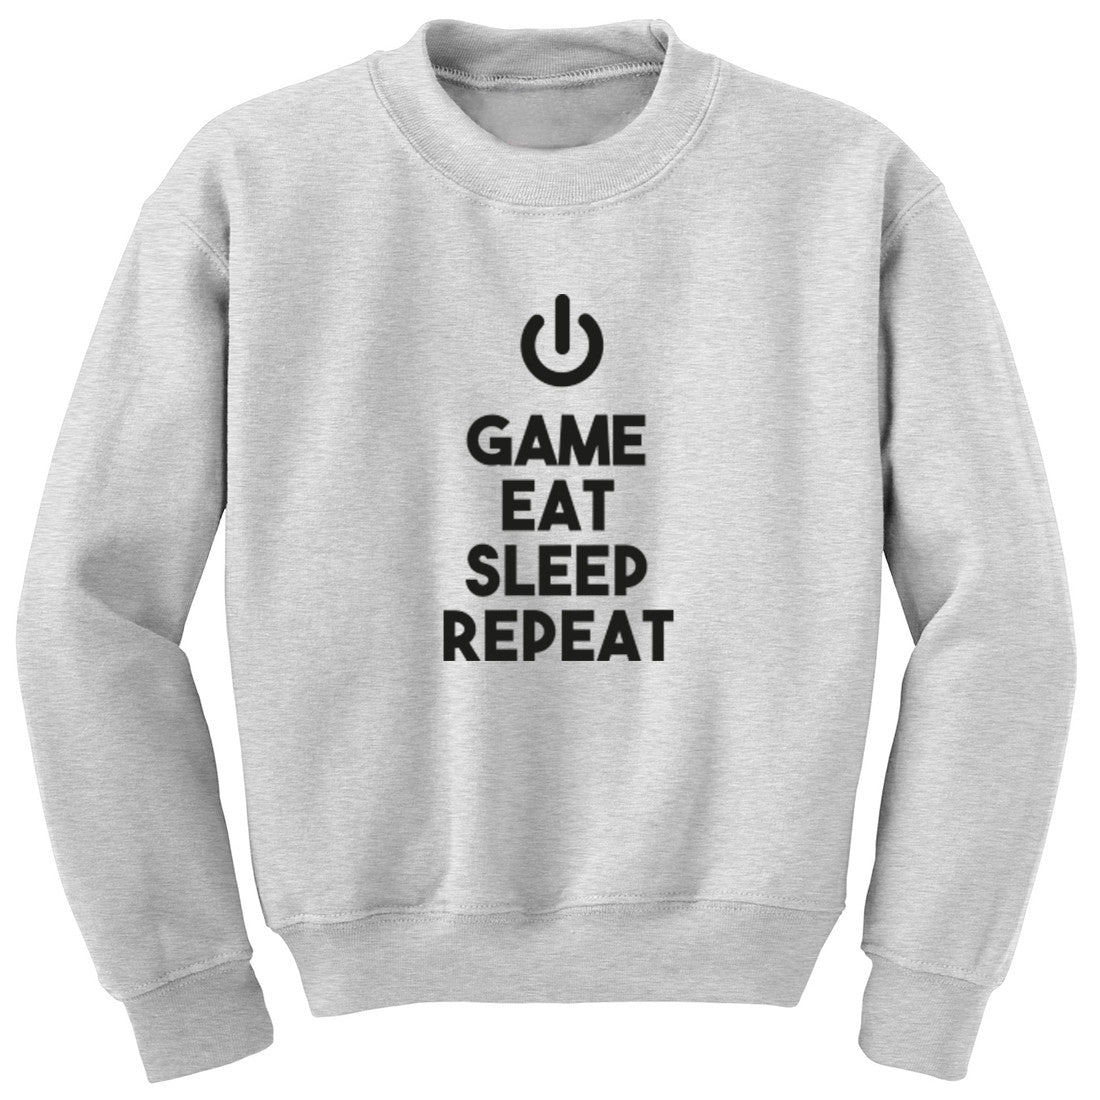 Game Eat Sleep Repeat Unisex Jumper K0444 - Illustrated Identity Ltd.